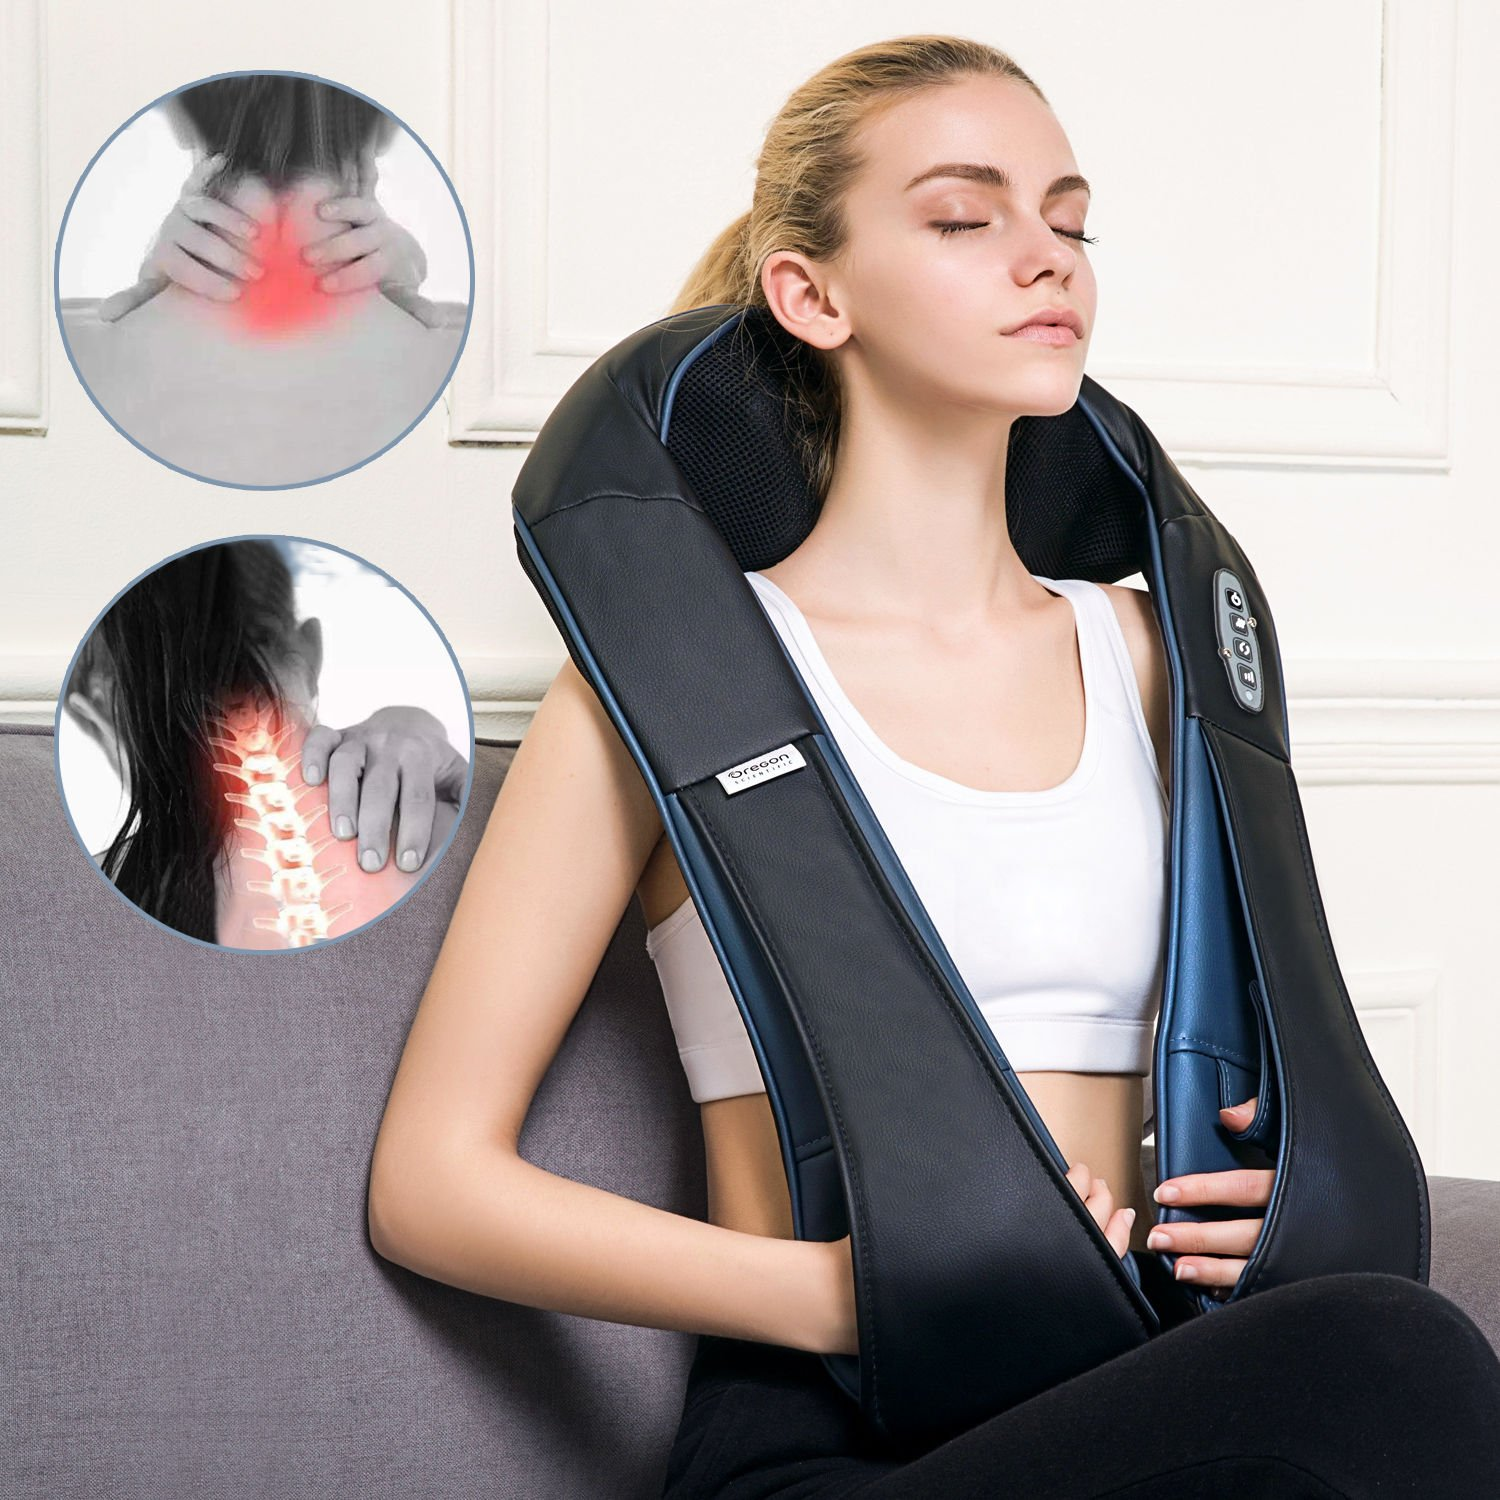 Neck and Shoulder Massager with Heat by Oregon Scientific, Adjustable Intensity and Deep Kneading Massager for Neck, Back, Shoulders